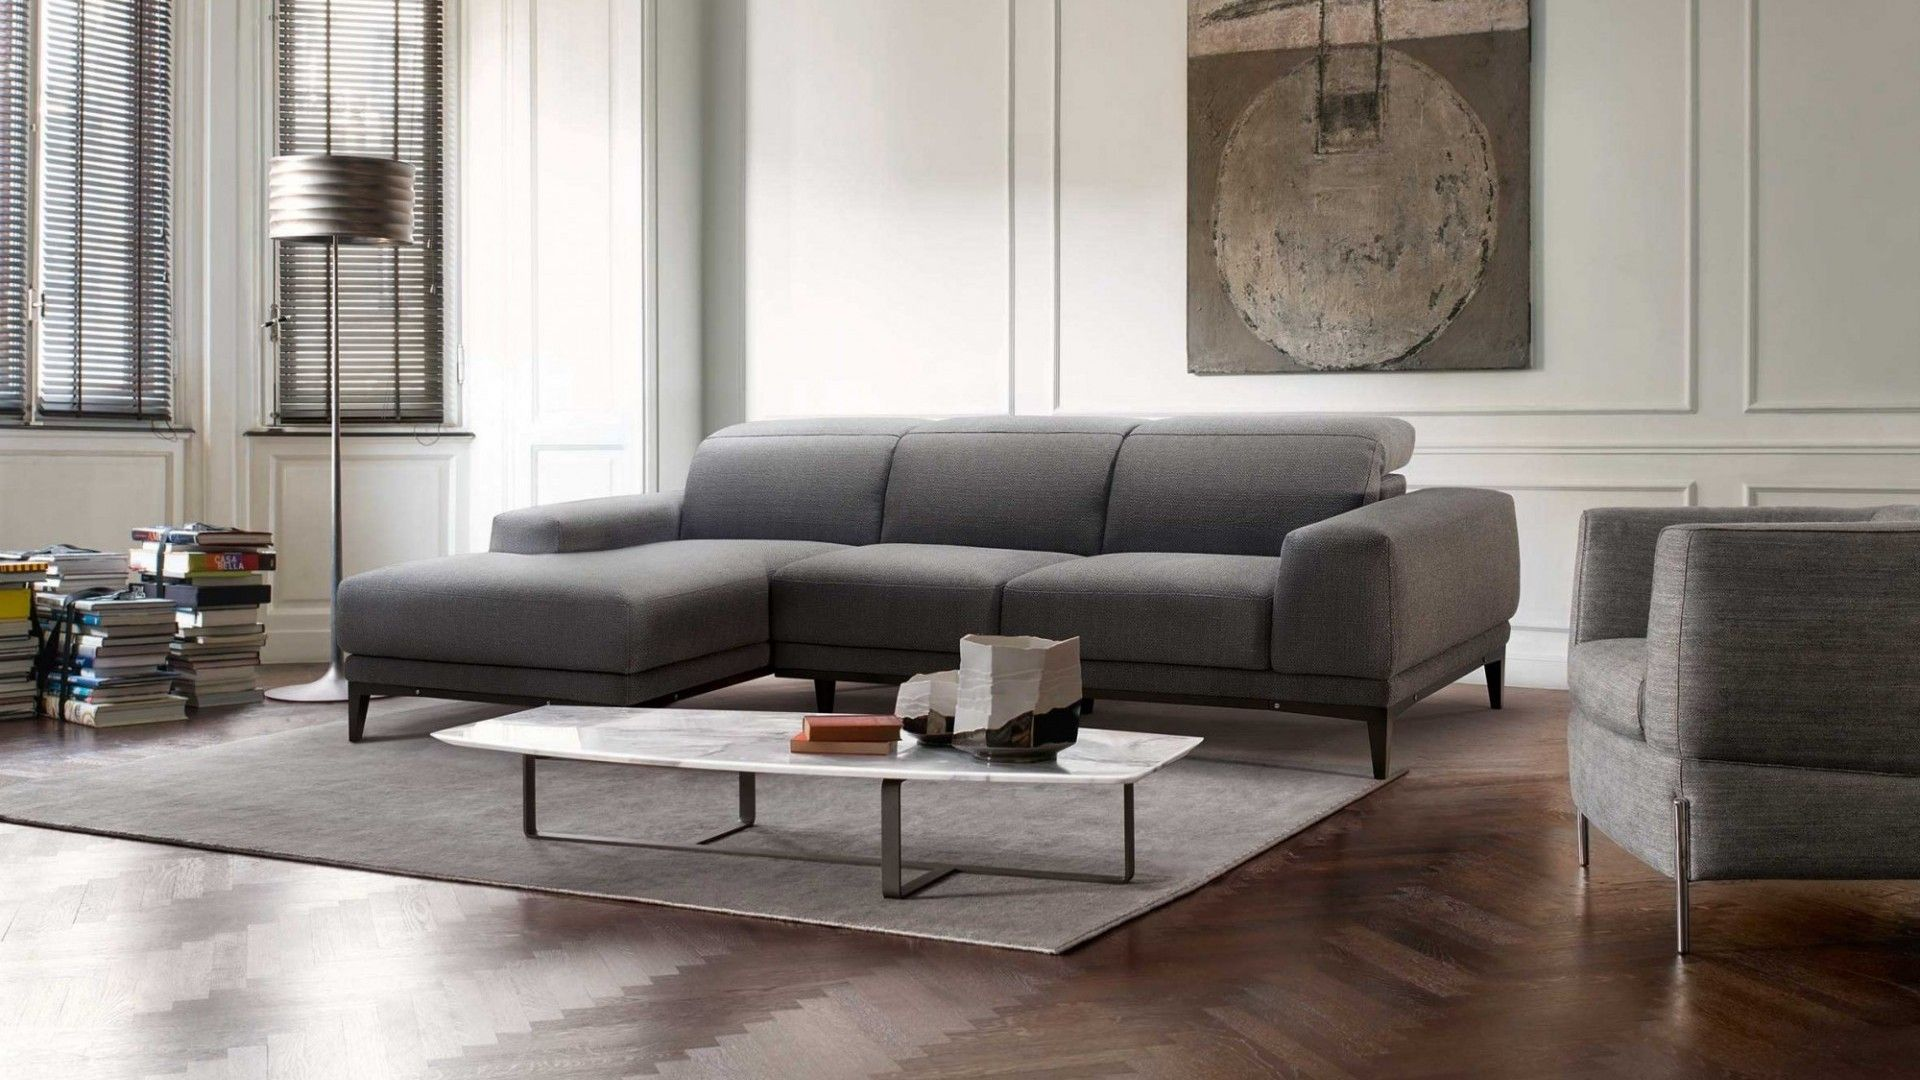 Sofa buy natuzzi leather sofa custom made style natuzzi leather sofa - A Sophisticated Sofa Design Boasting Soft Shapes And Adjustable Headrests For Superb Comfort Without Compromising Style